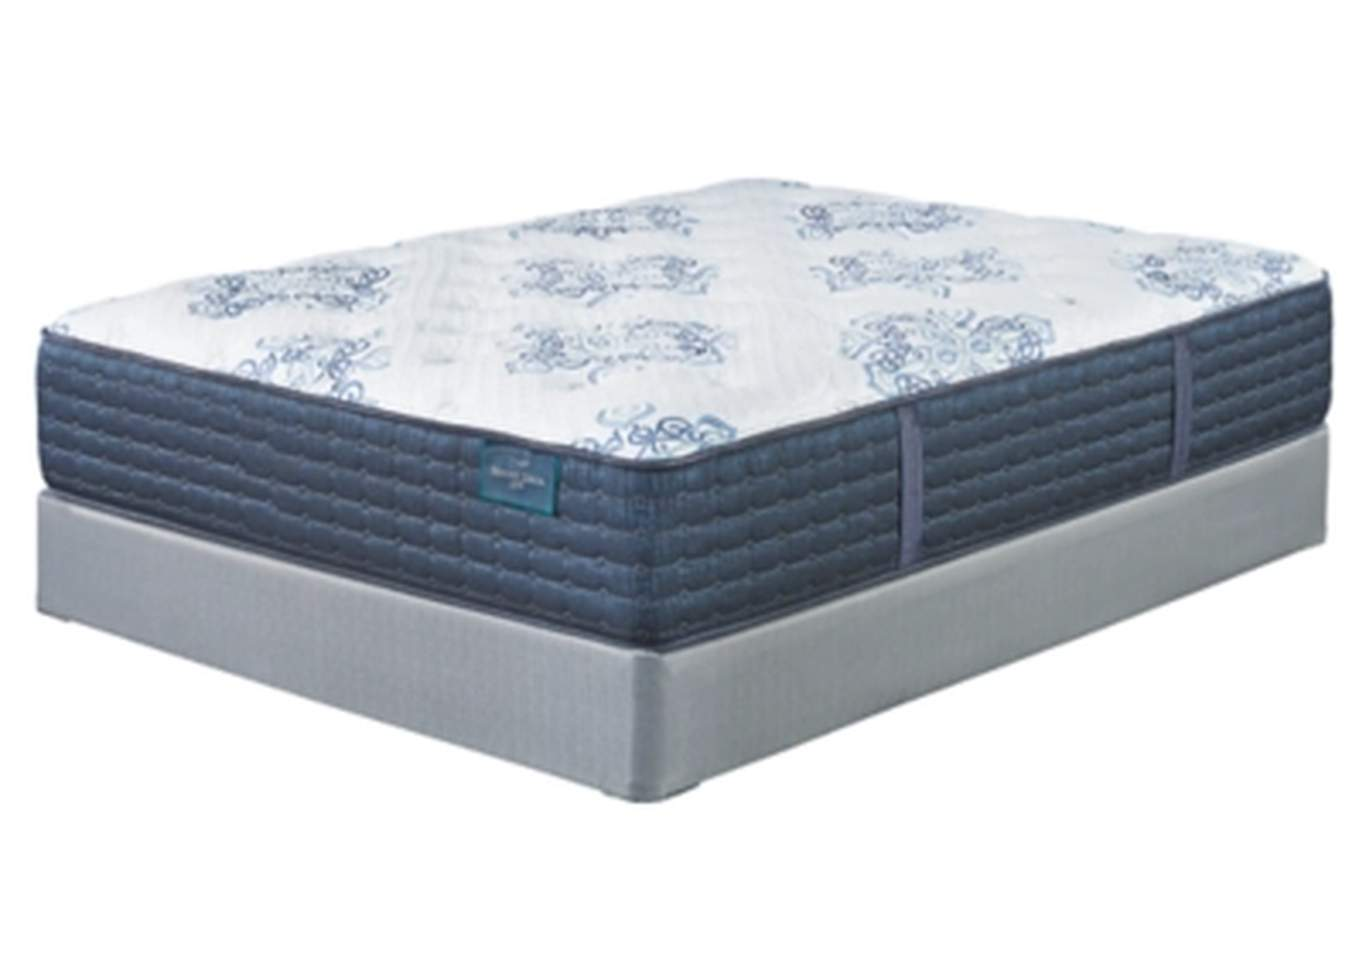 Mt. Dana Firm White King Mattress,Sierra Sleep by Ashley